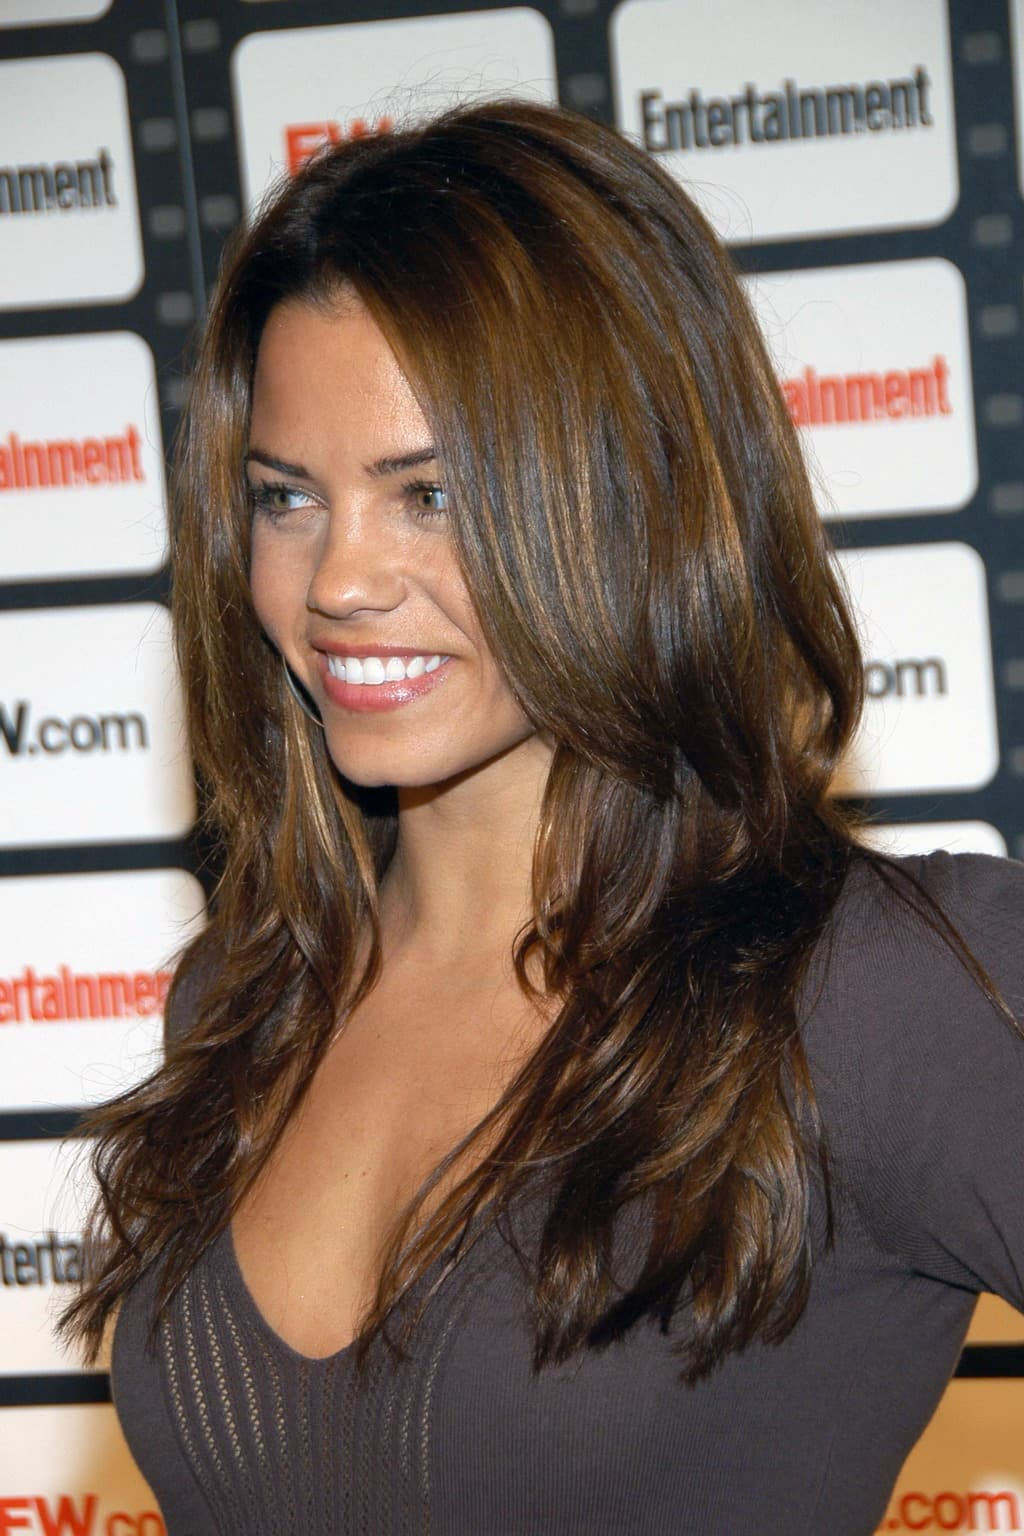 Jenna Dewan Tatum Plastic Surgery Before And After photo - 1